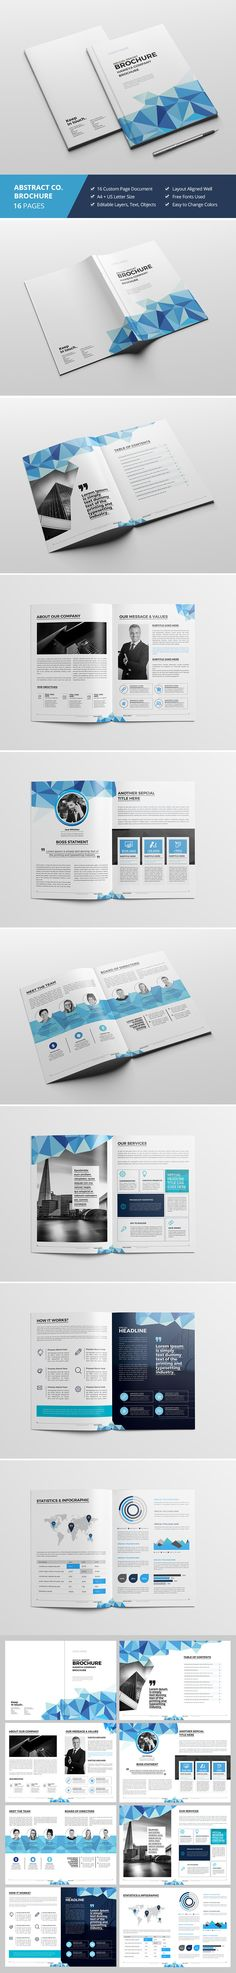 """Check out my @Behance project: """"Haweya Abstract Annual Report"""" https://www.behance.net/gallery/53483587/Haweya-Abstract-Annual-Report"""